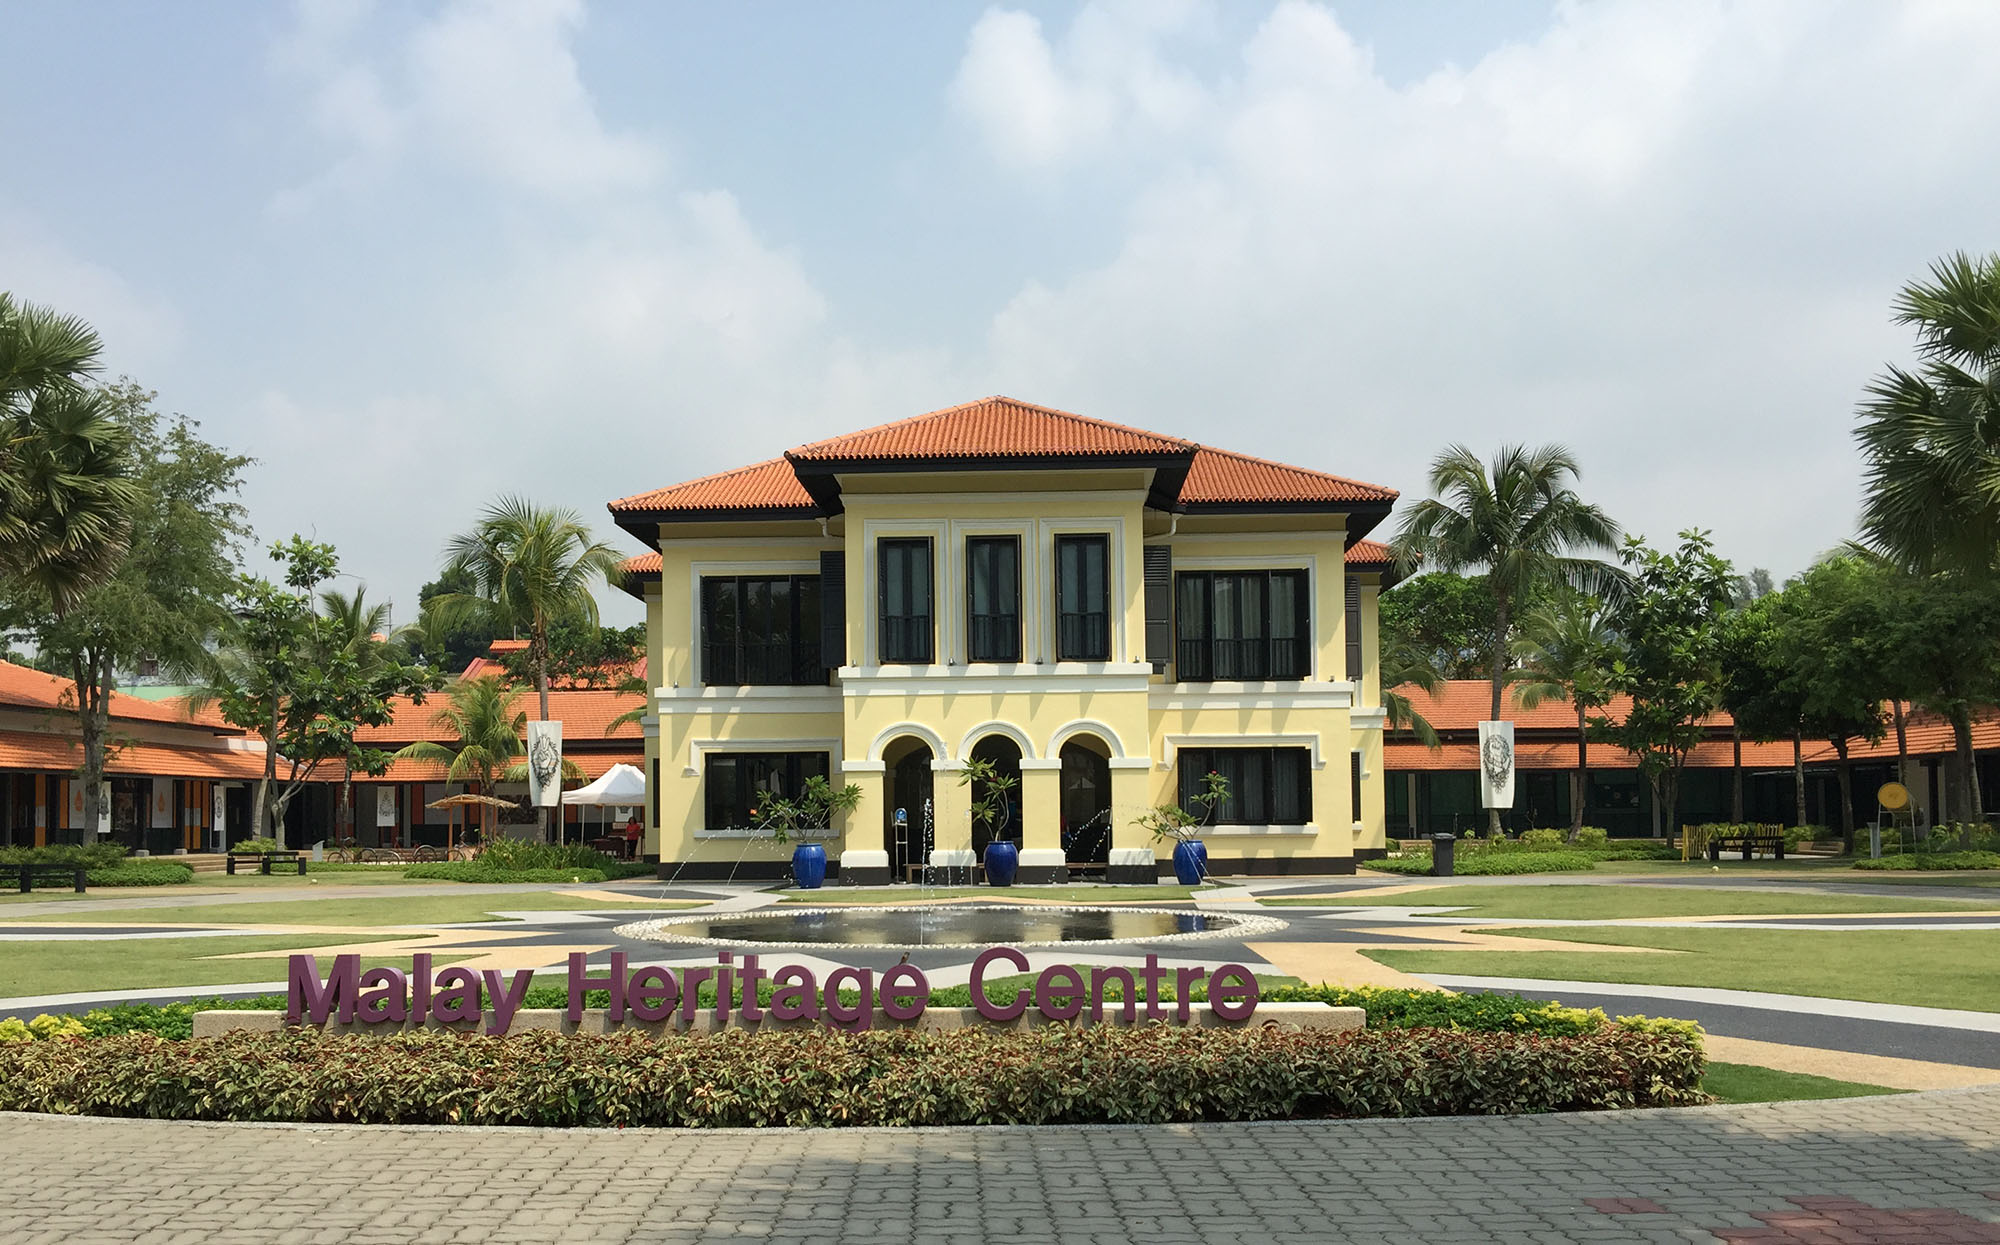 Malay Heritage Centre (Previously Sultan's Palace)